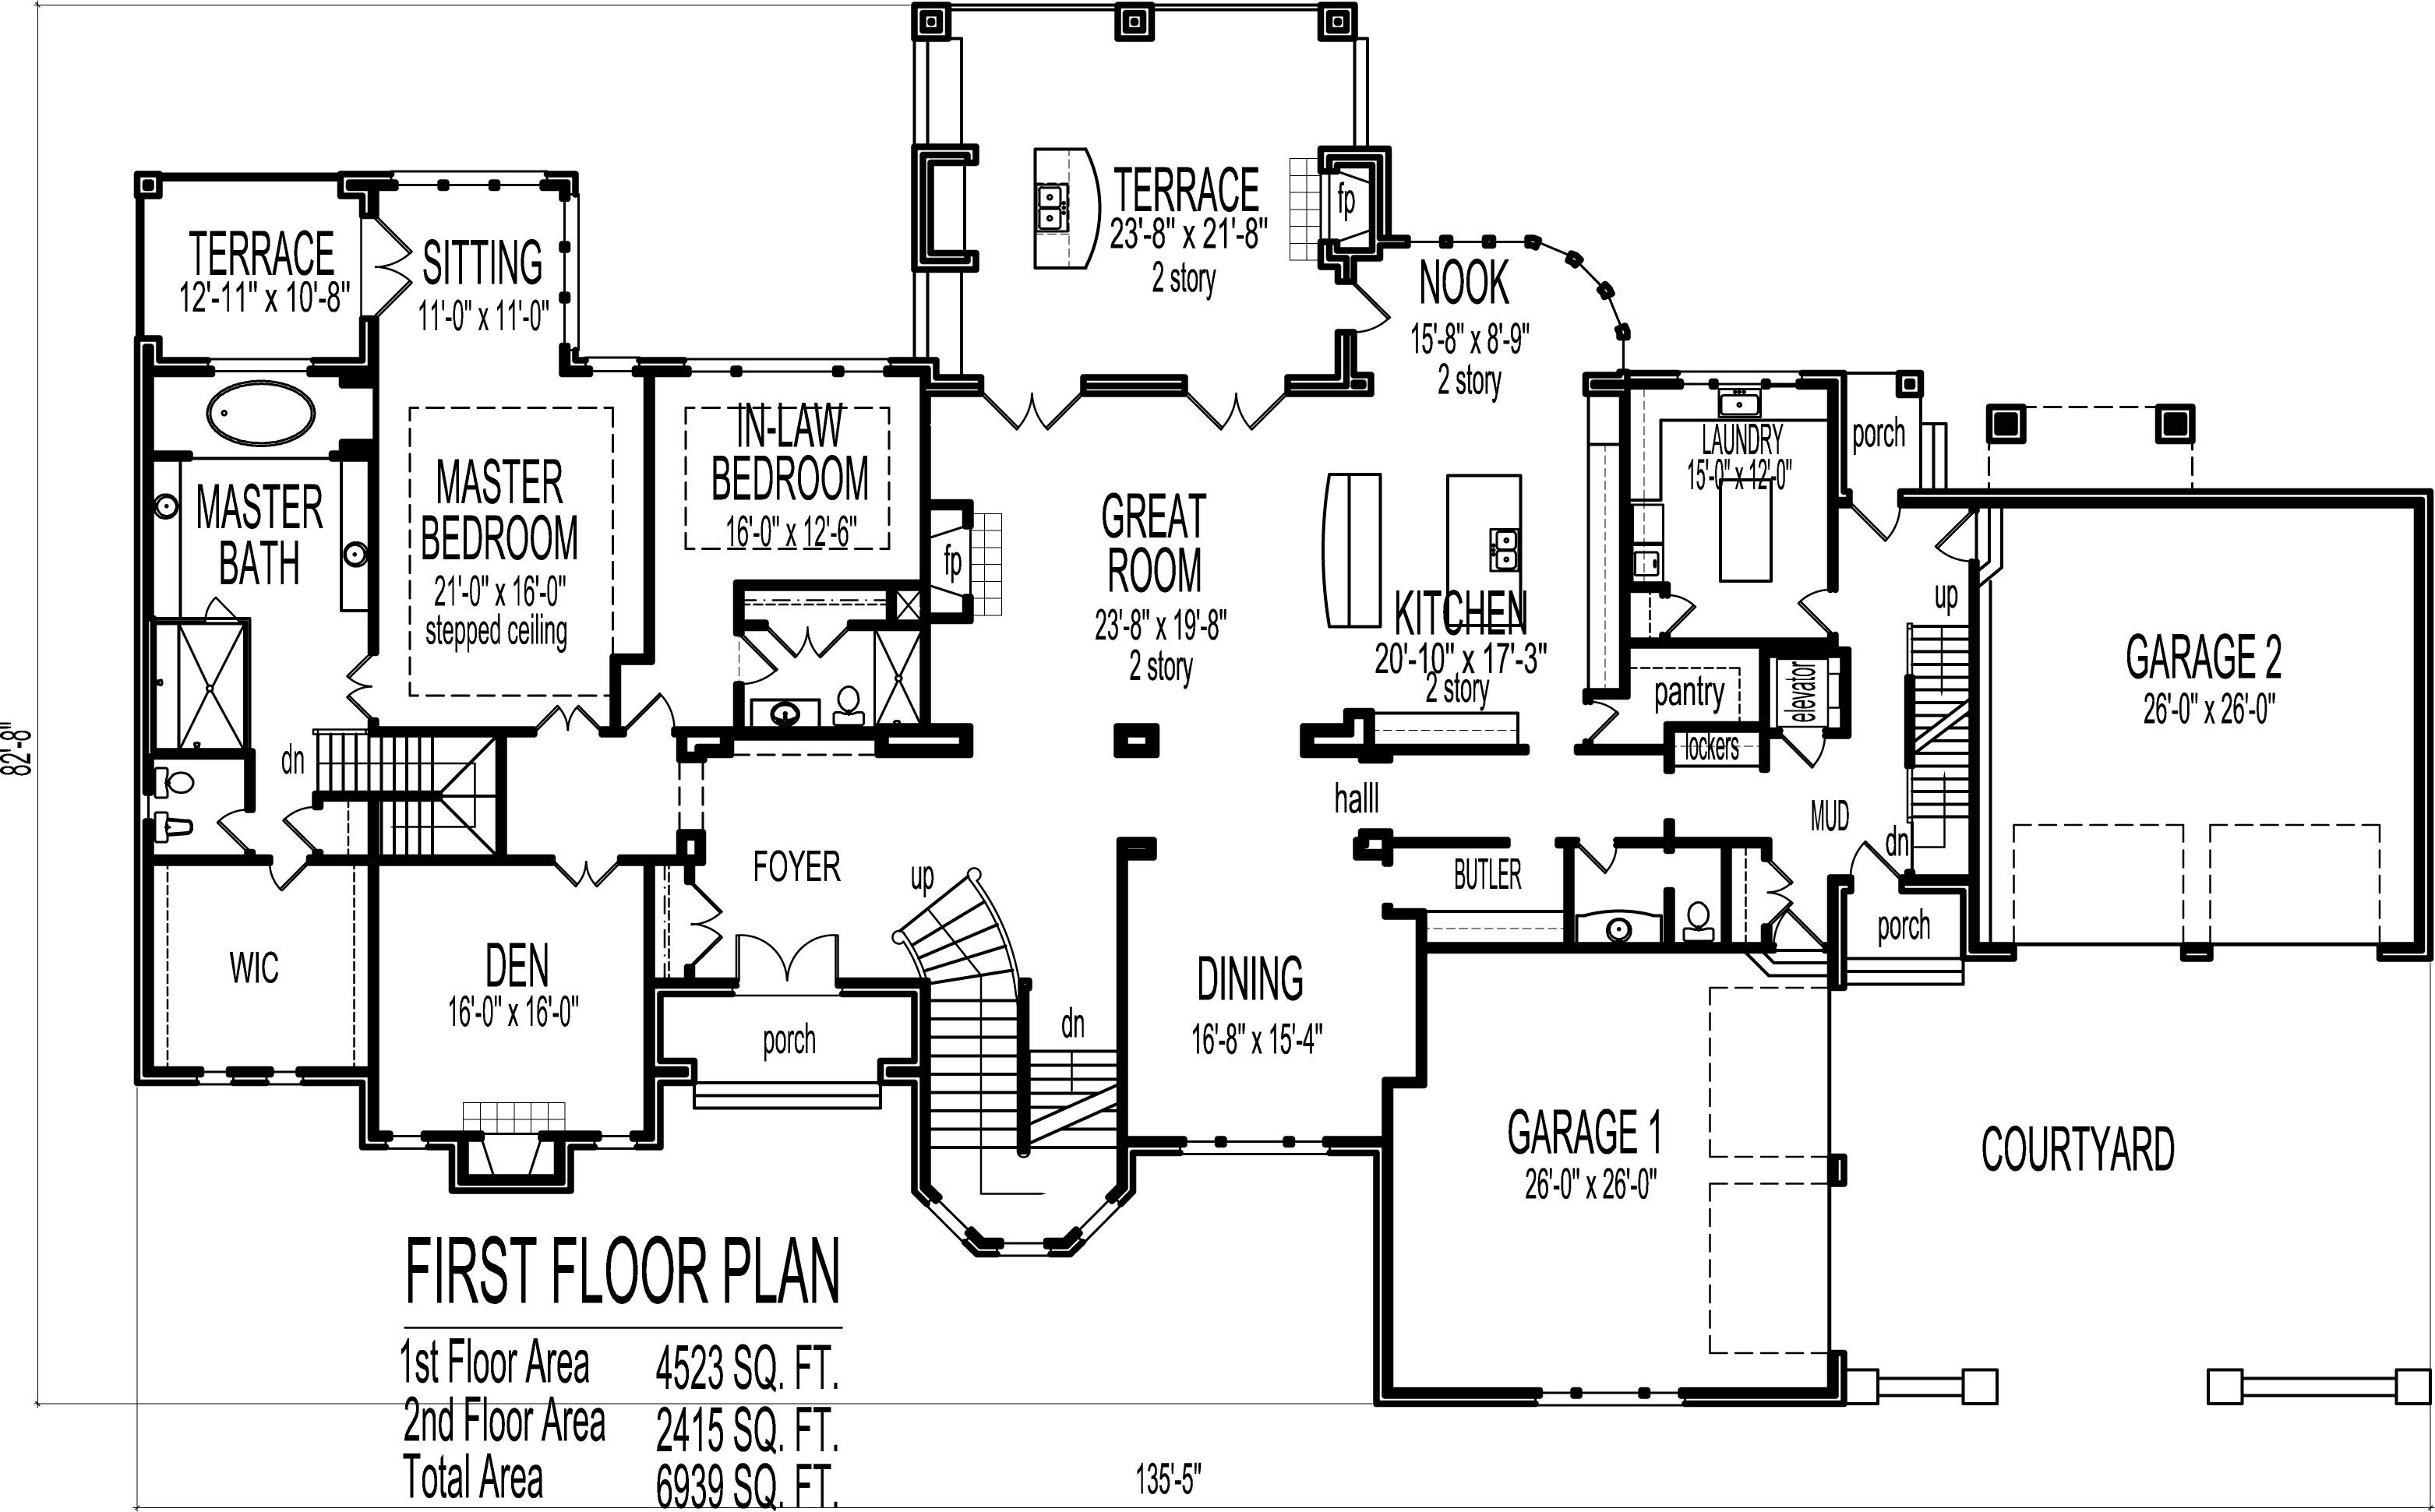 6 Bedroom 7 Bathroom Dream Home Plans Indianapolis Ft Wayne Evansville Indiana South Bend Lafayet 5 Bedroom House Plans Mansion Floor Plan Basement House Plans